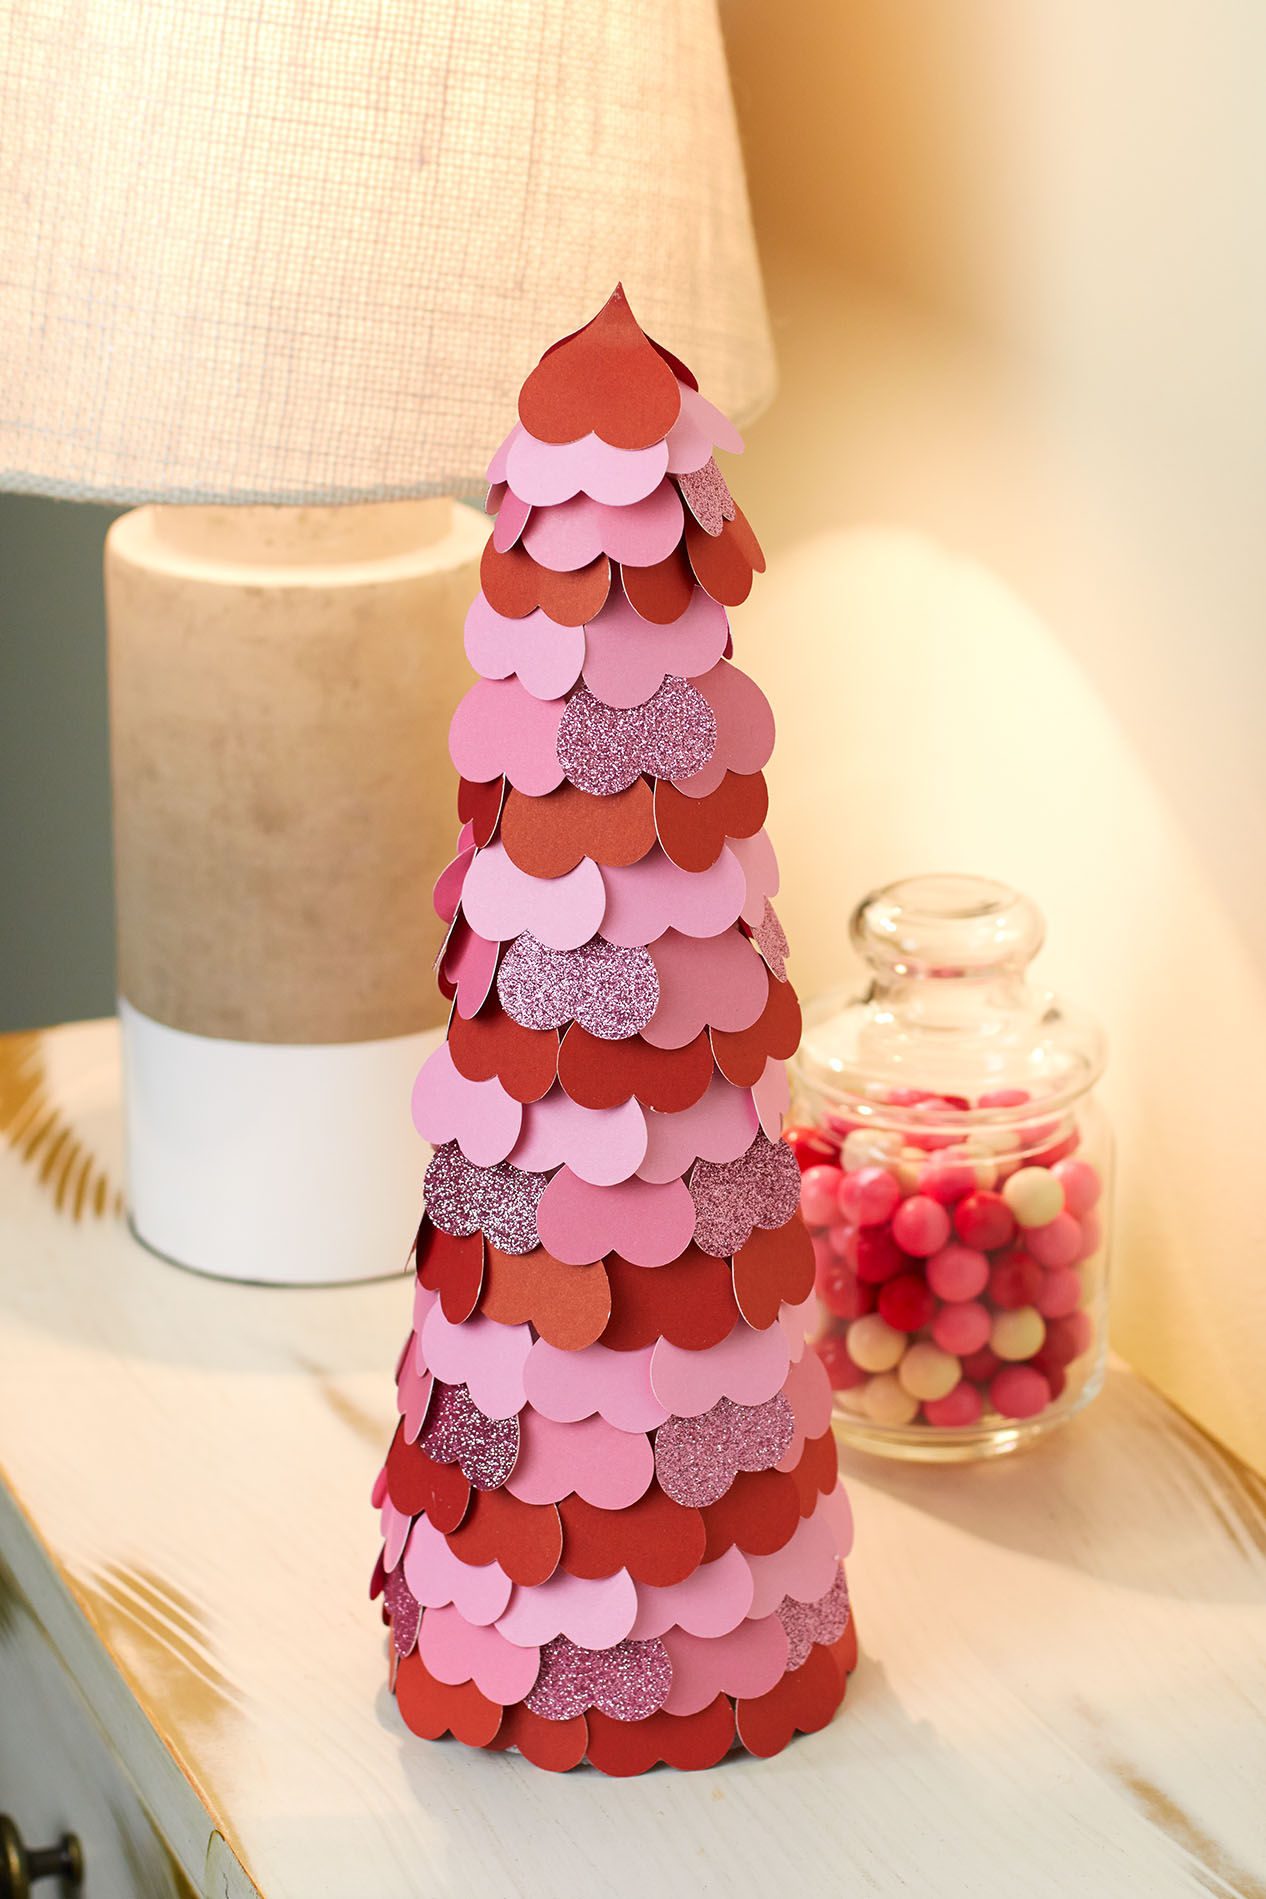 Learn how to make this adorable heart tree for Valentine's Day! #CloseToMyHeart #ctmh #Valentines #decor #hearts